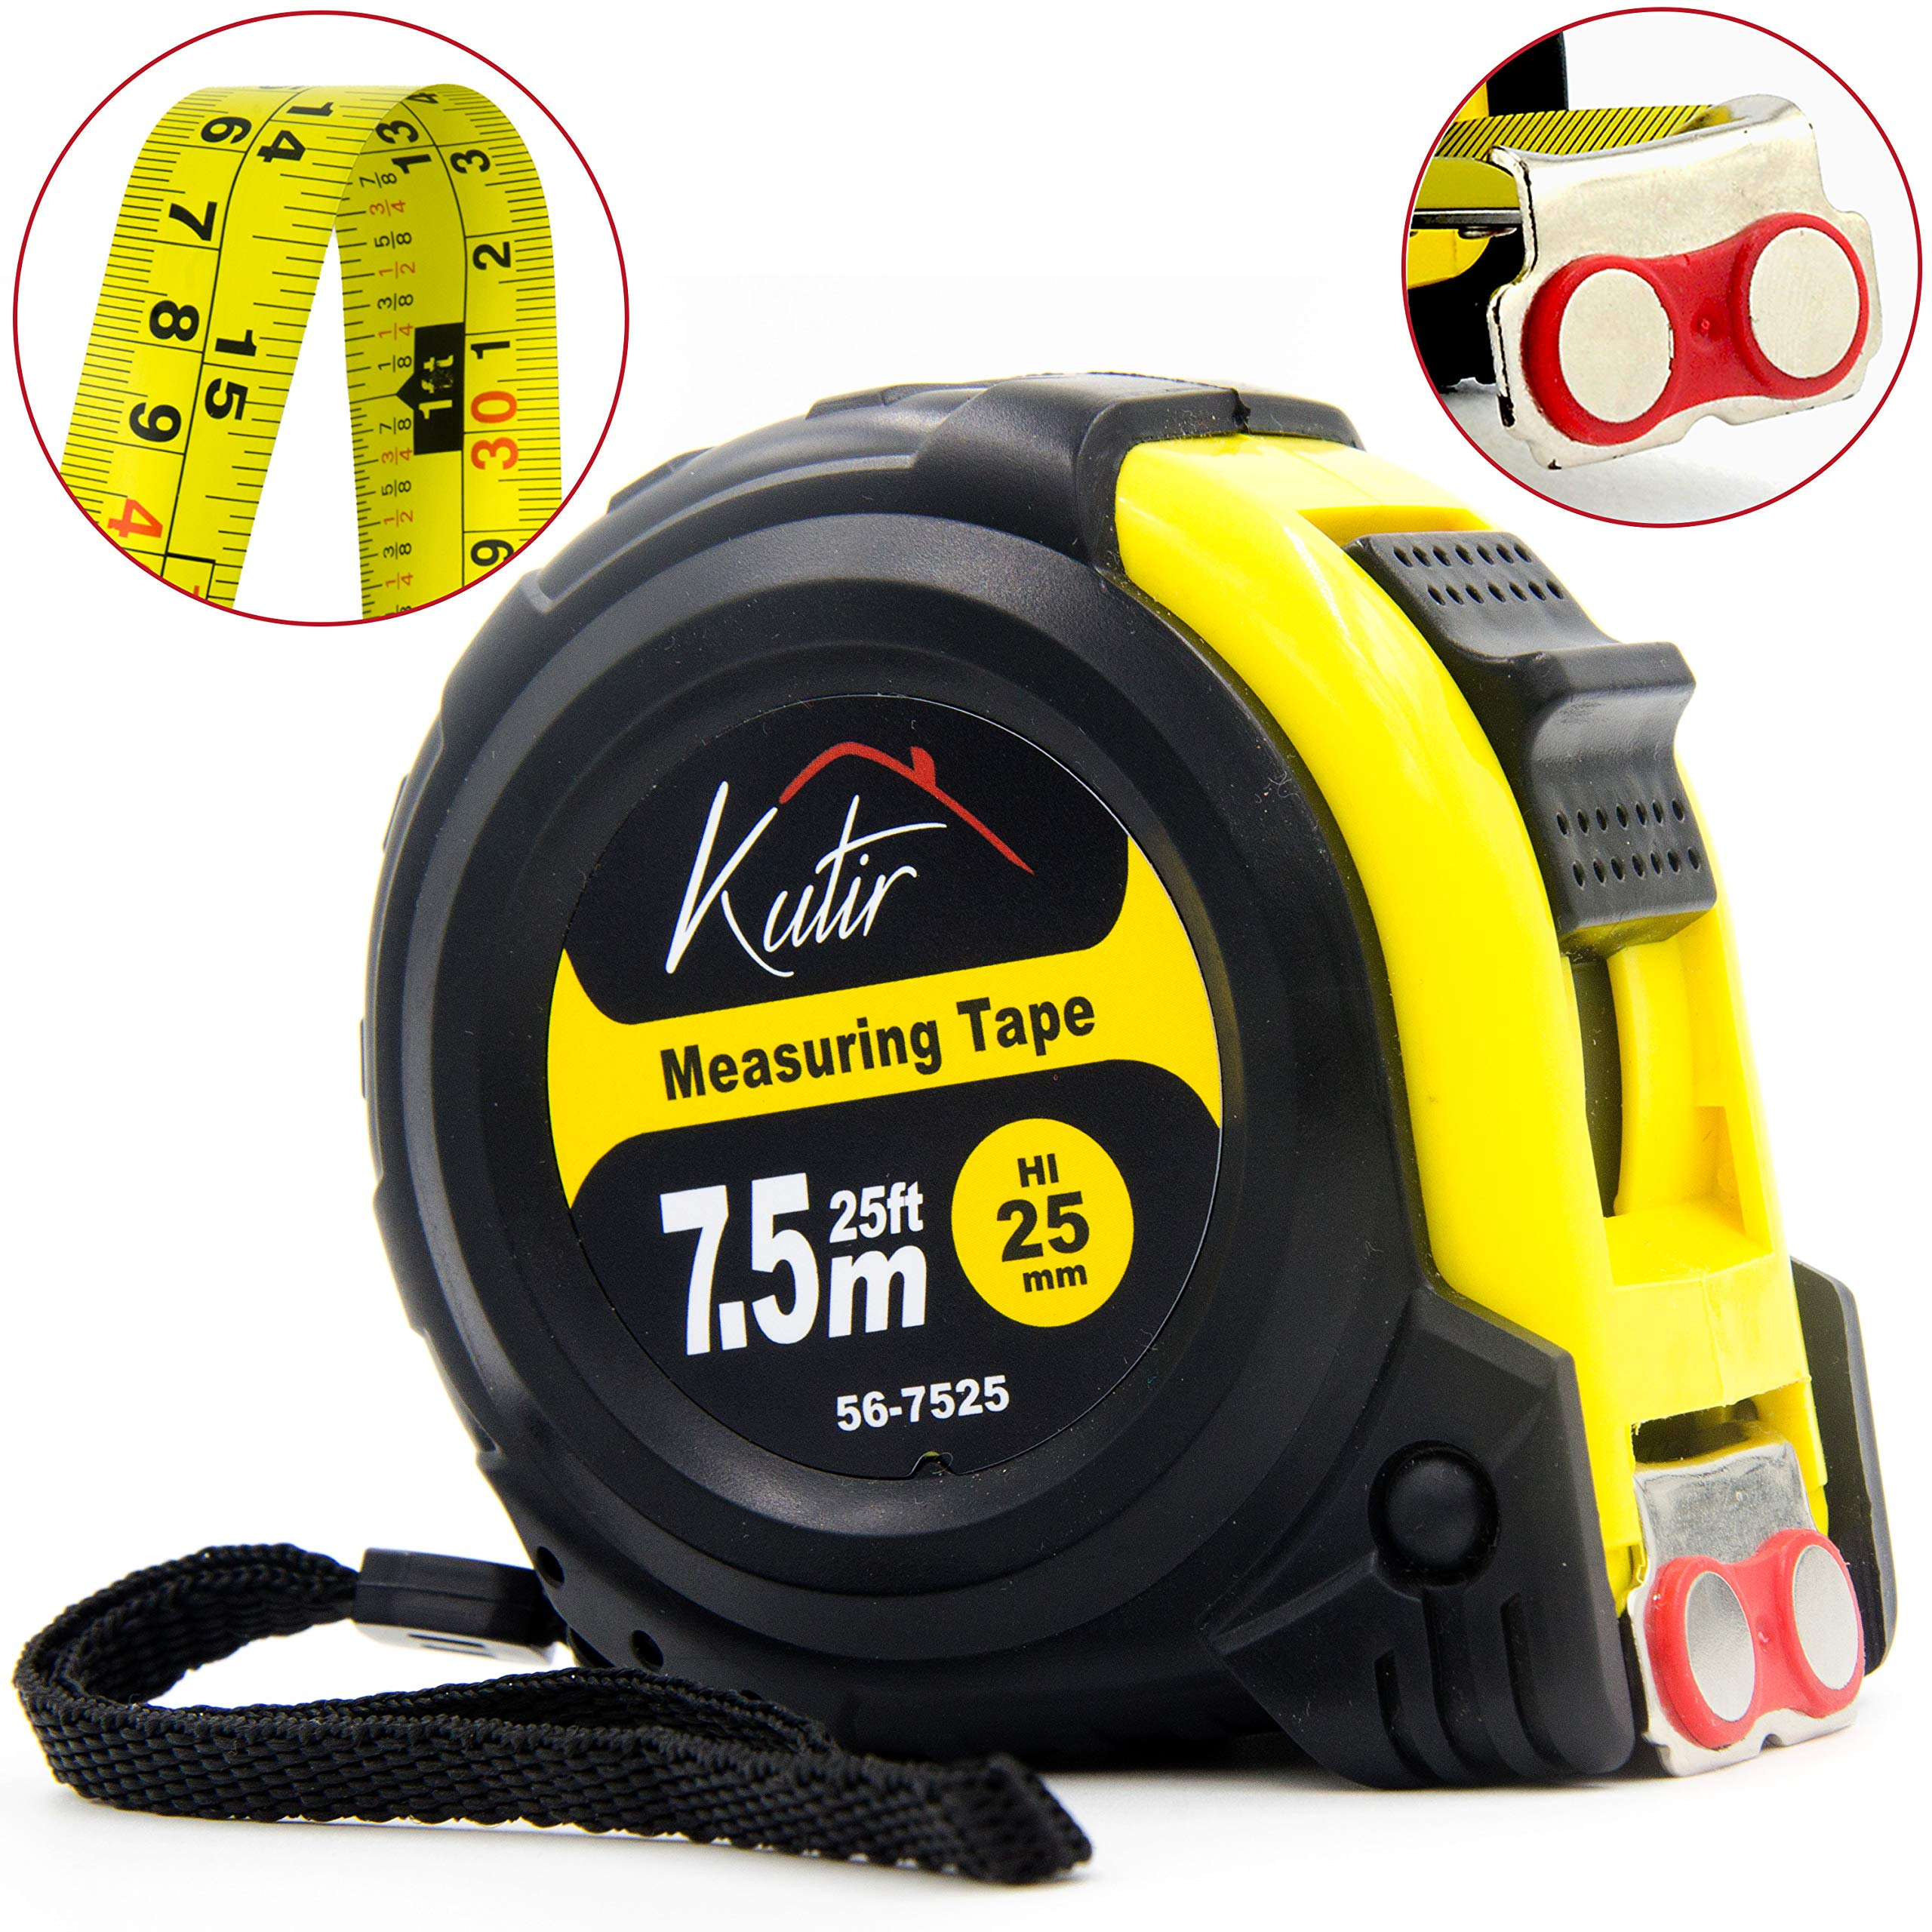 Measuring Tape Measure By Kutir - EASY TO READ 25 Foot BOTH SIDE DUAL RULER, Retractable, STURDY, Heavy Duty, MAGNETIC HOOK, Metric, Inches and Imperial Measurement, SHOCK ABSORBENT Solid Rubber Case by Kutir (Image #1)